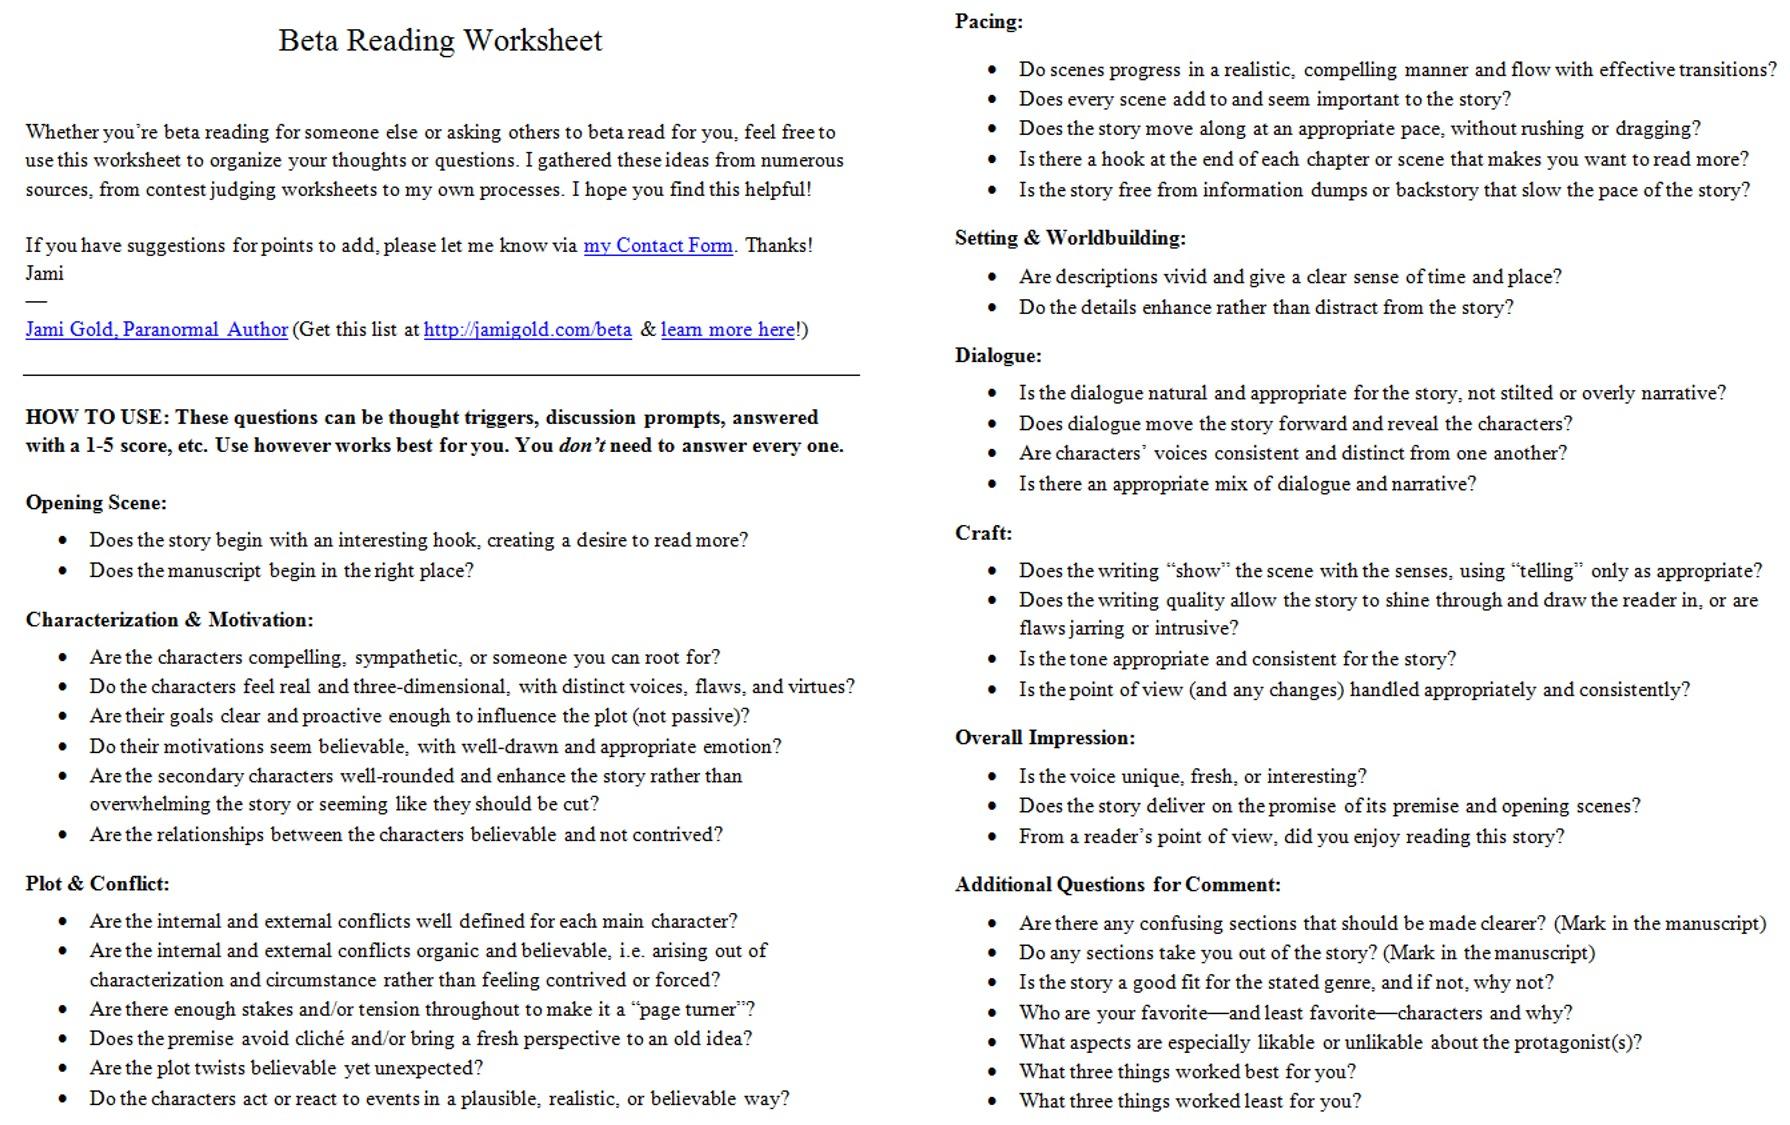 Weirdmailus  Unusual Worksheets For Writers  Jami Gold Paranormal Author With Lovable Screen Shot Of The Twopage Beta Reading Worksheet With Comely Types Of Triangle Worksheet Also Measuring Triangles Worksheets In Addition Comparing And Ordering Rational Numbers Worksheets And Rock Cycle Worksheet Elementary As Well As Printable Scientific Method Worksheet Additionally Simple And Compound Sentence Worksheet From Jamigoldcom With Weirdmailus  Lovable Worksheets For Writers  Jami Gold Paranormal Author With Comely Screen Shot Of The Twopage Beta Reading Worksheet And Unusual Types Of Triangle Worksheet Also Measuring Triangles Worksheets In Addition Comparing And Ordering Rational Numbers Worksheets From Jamigoldcom